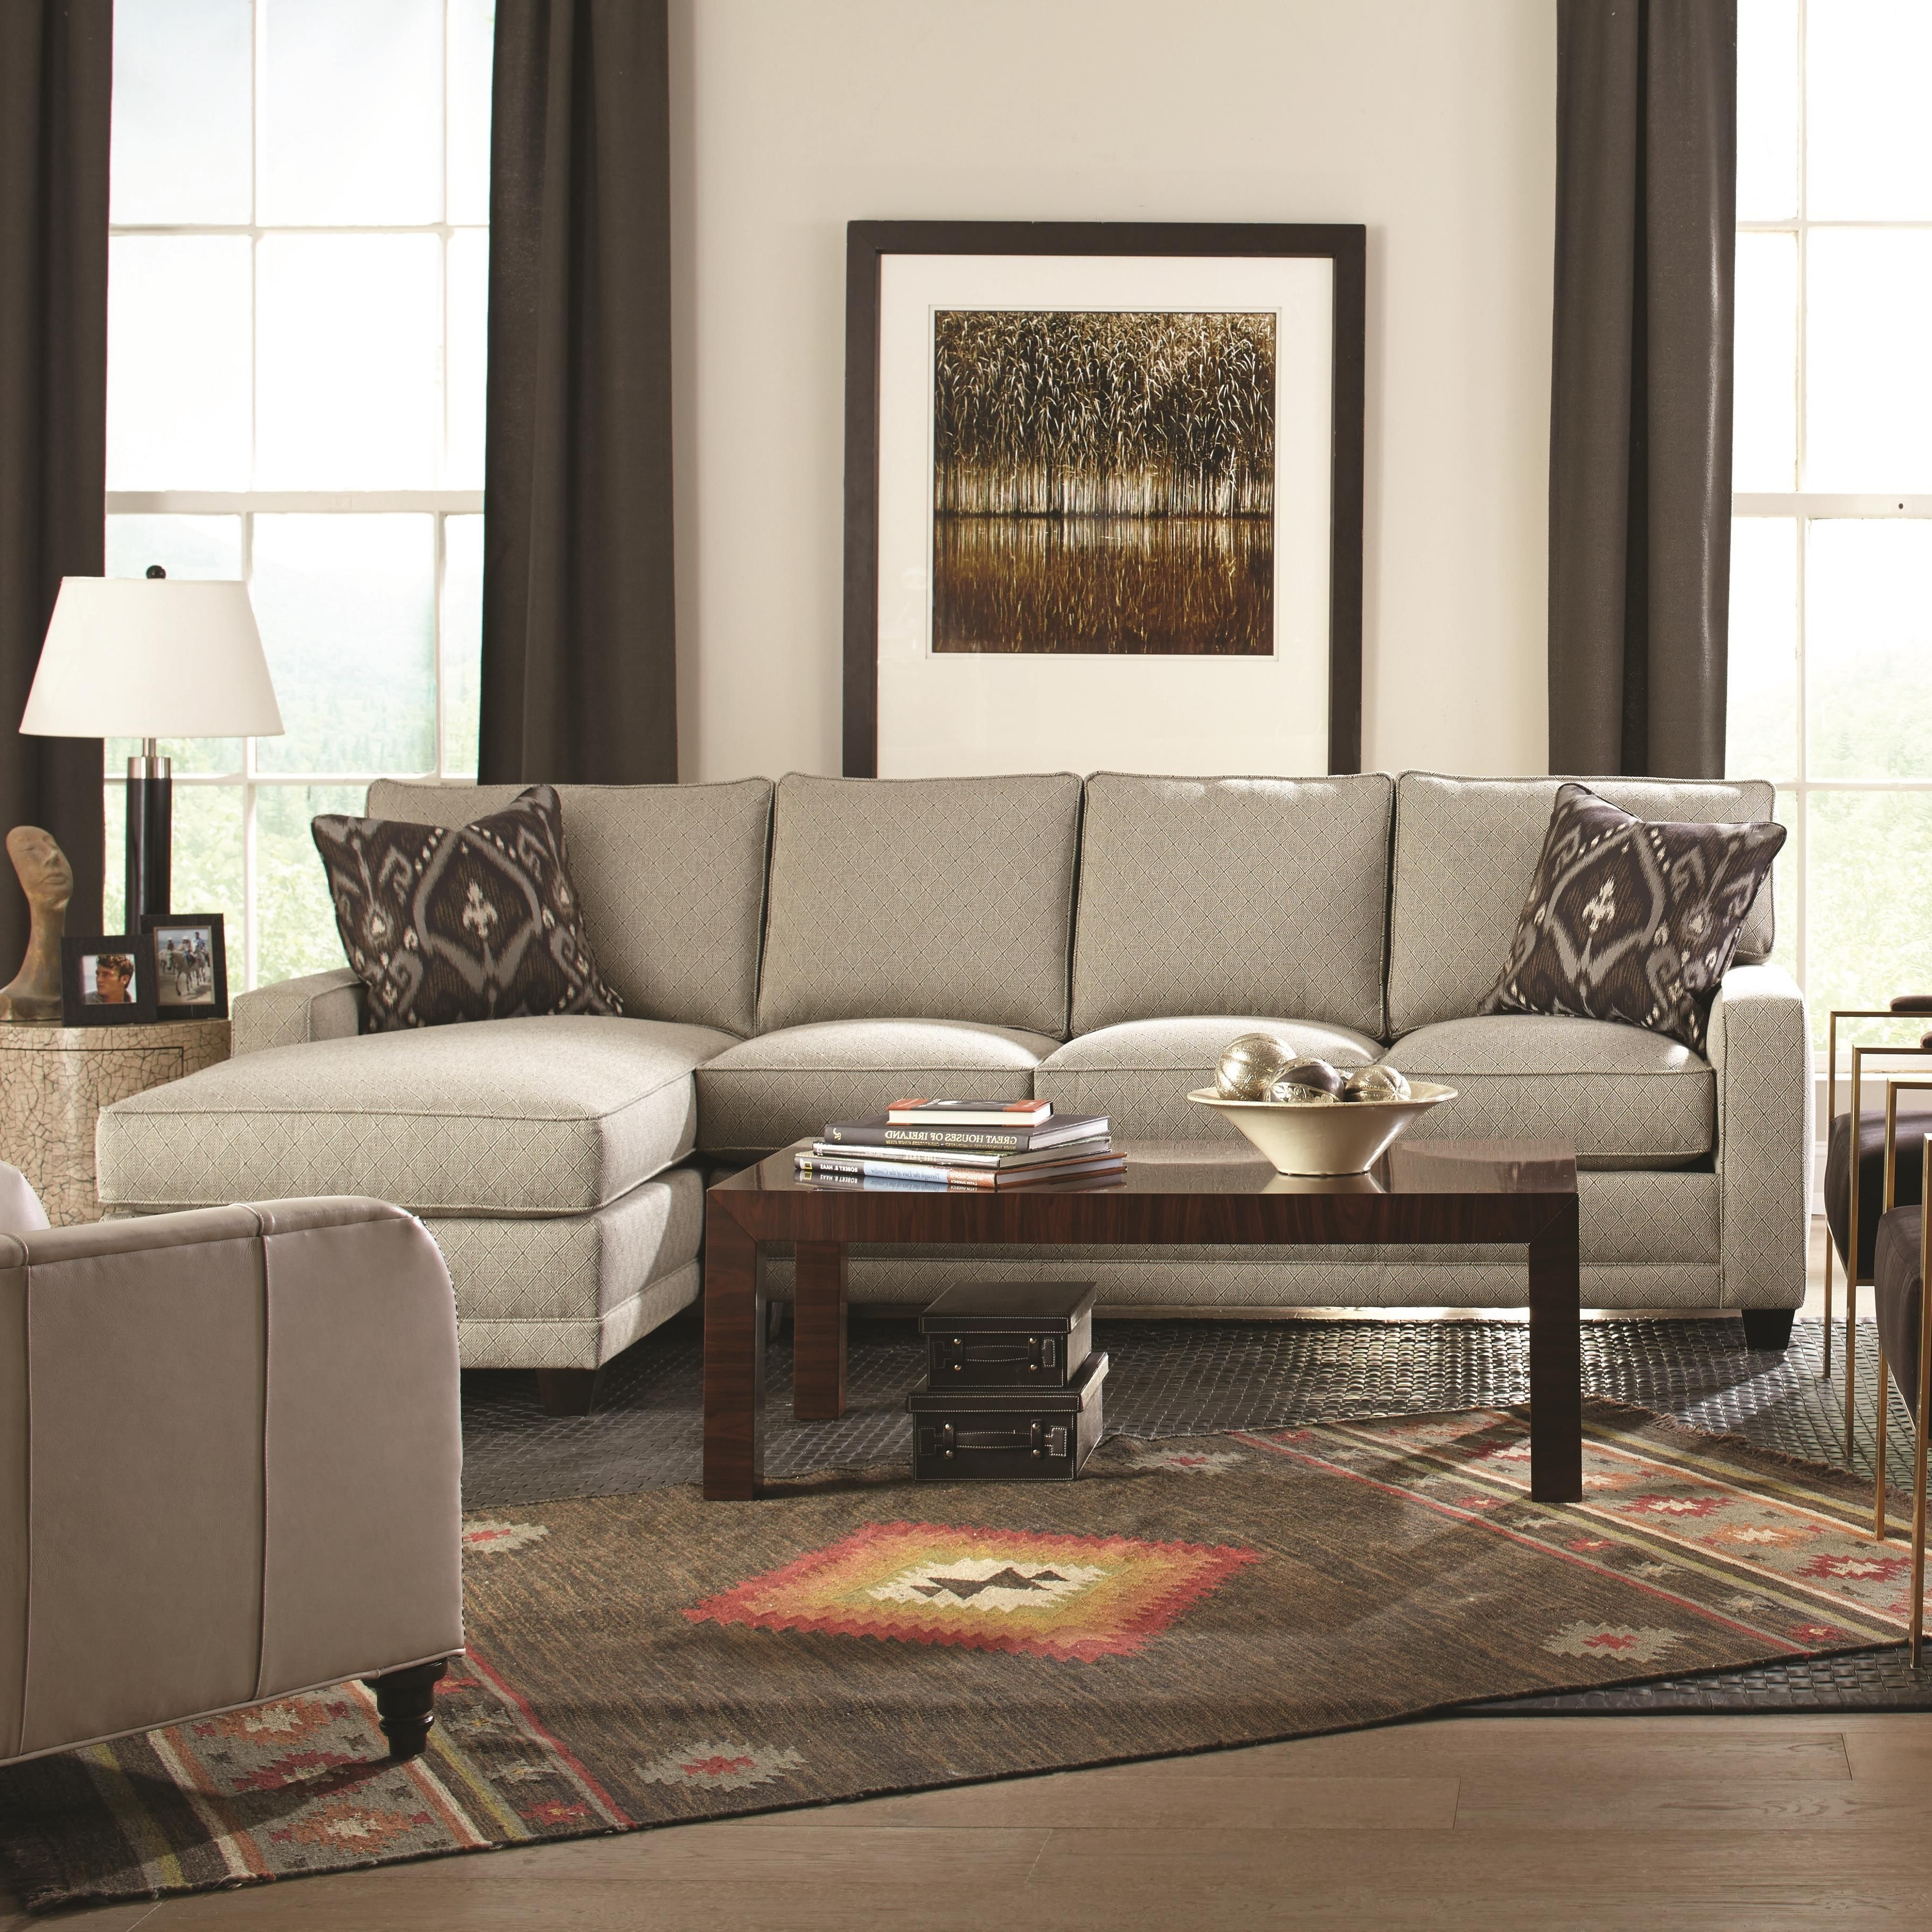 Living Pertaining To Most Popular Virginia Sectional Sofas (View 10 of 15)